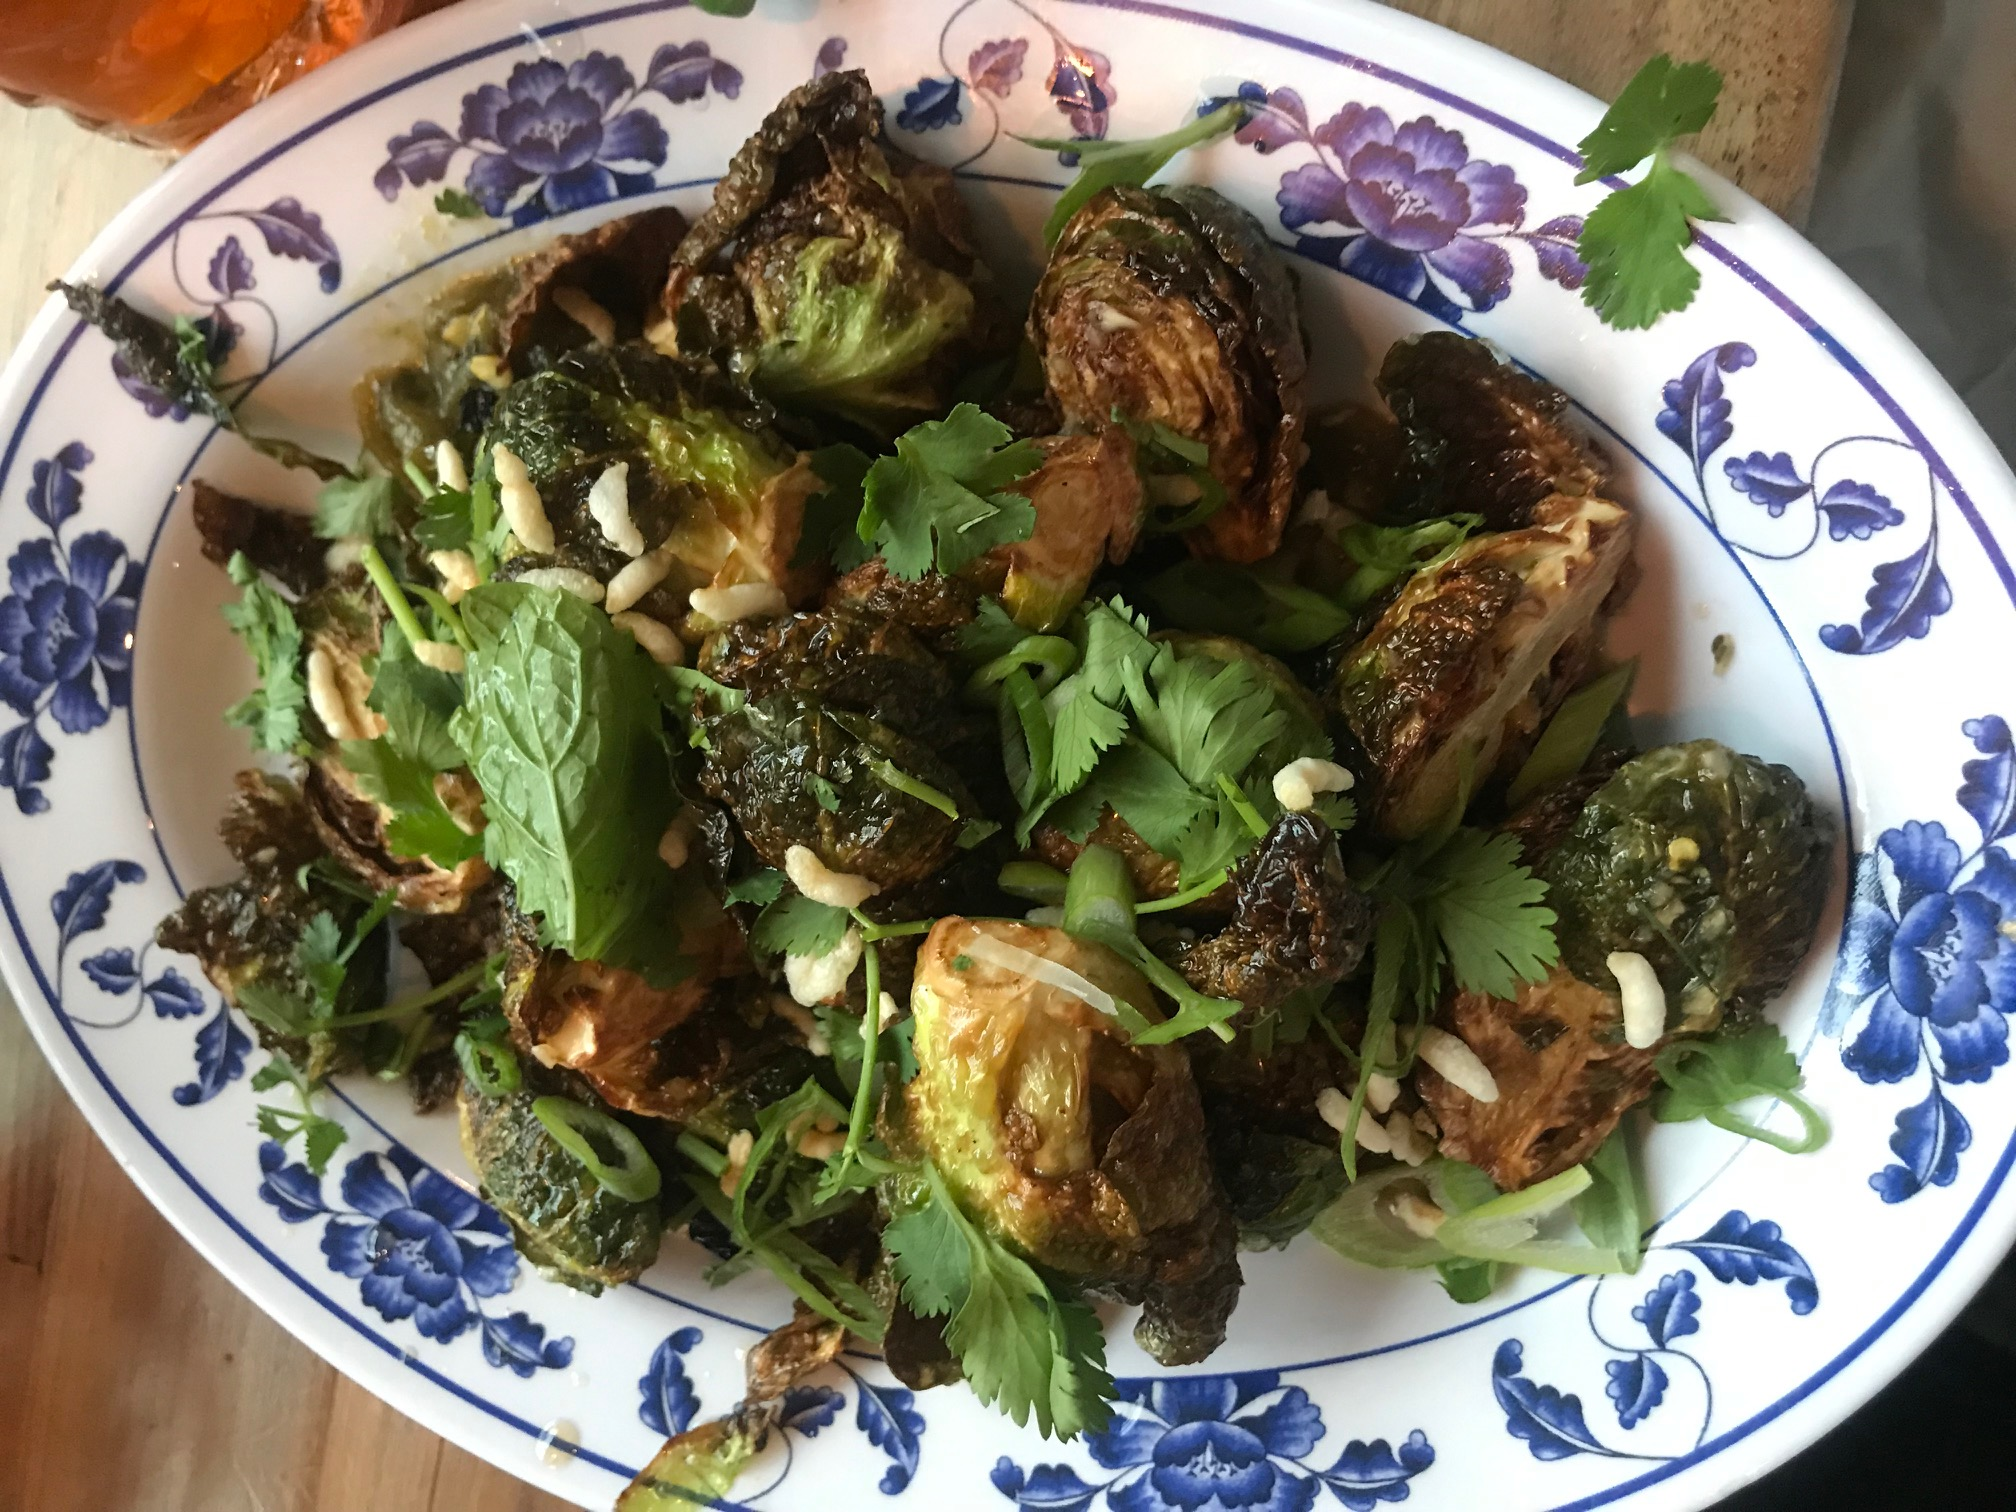 Plate of brussel sprouts